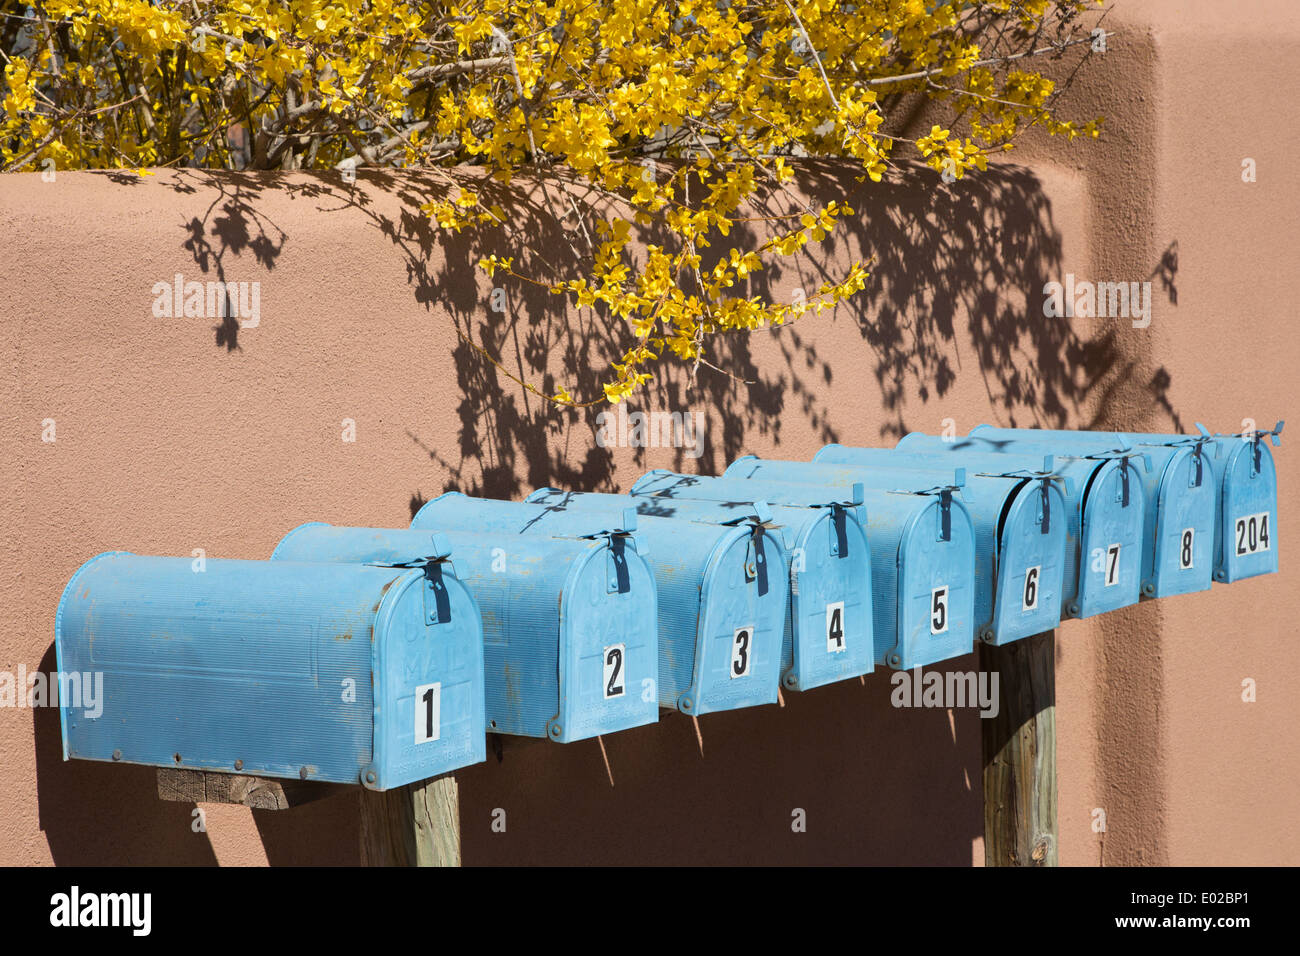 Row of blue mailboxes numbered 1 through 8 and 204. - Stock Image